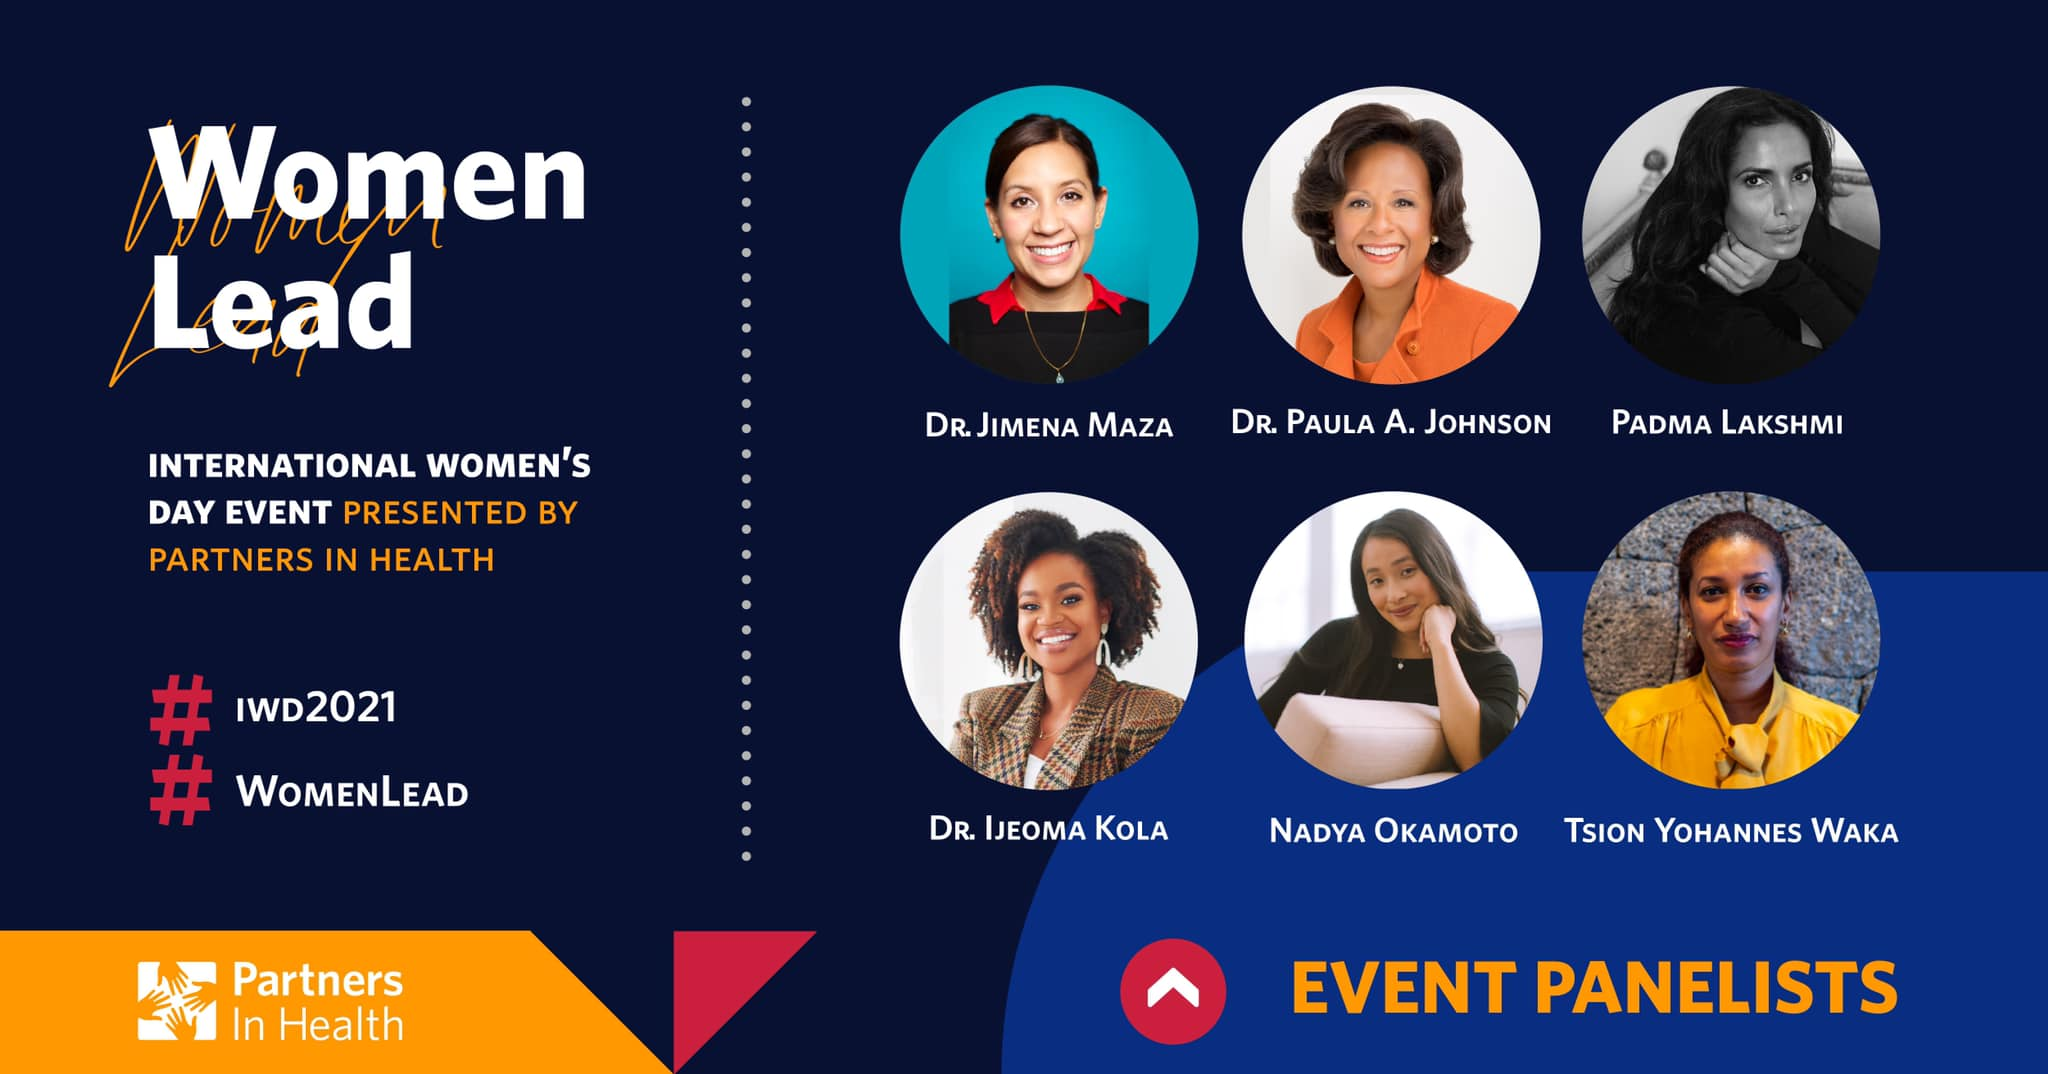 Women Lead - International Women's Day Event Presented By Partners In Health